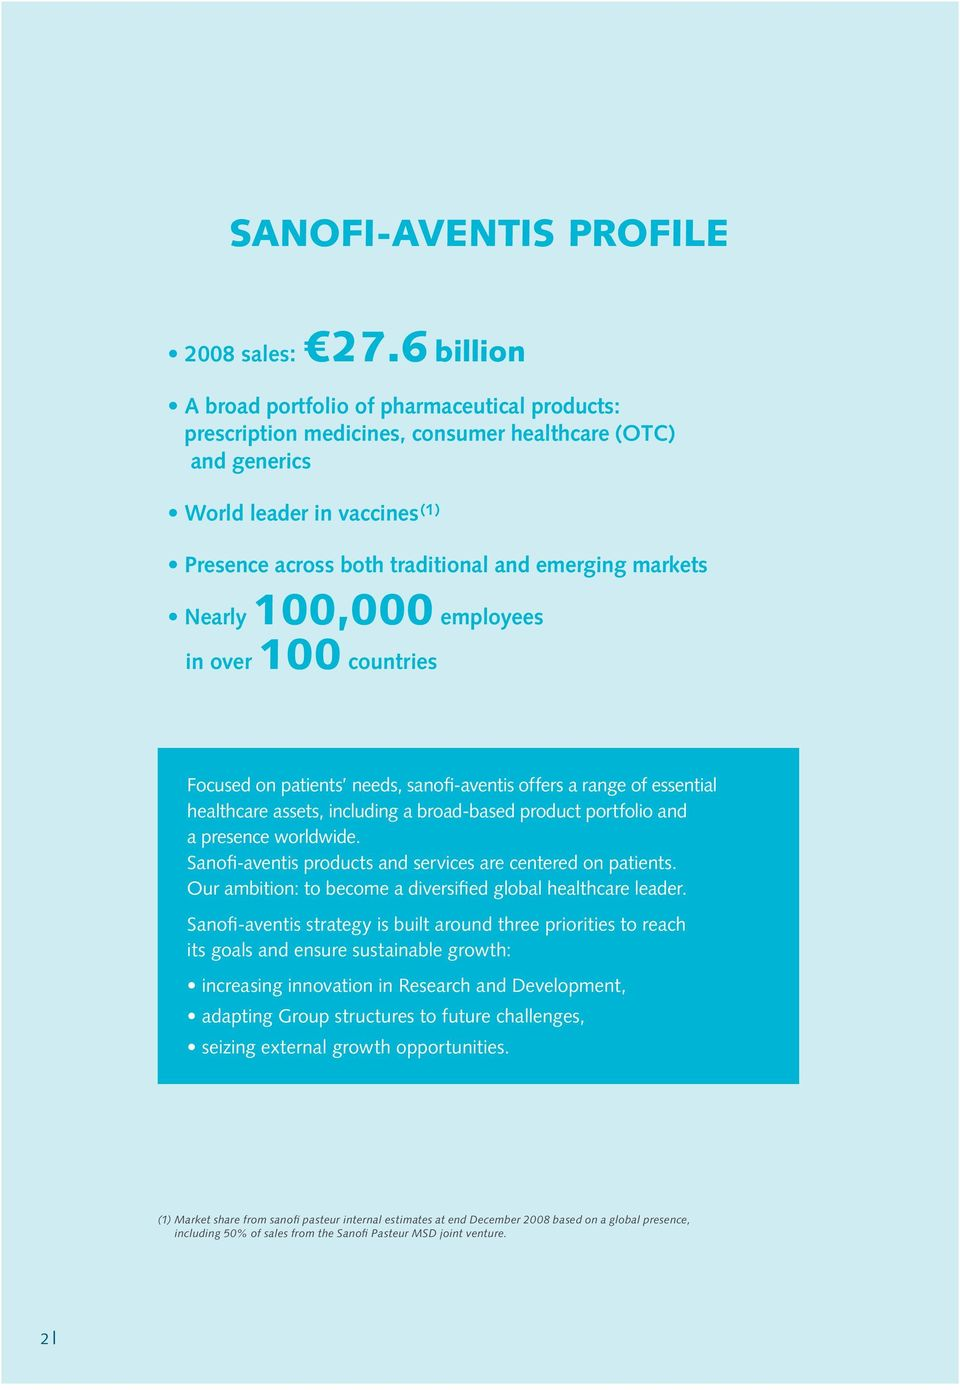 markets Nearly 100,000 employees in over 100 countries Focused on patients needs, sanofi-aventis offers a range of essential healthcare assets, including a broad-based product portfolio and a